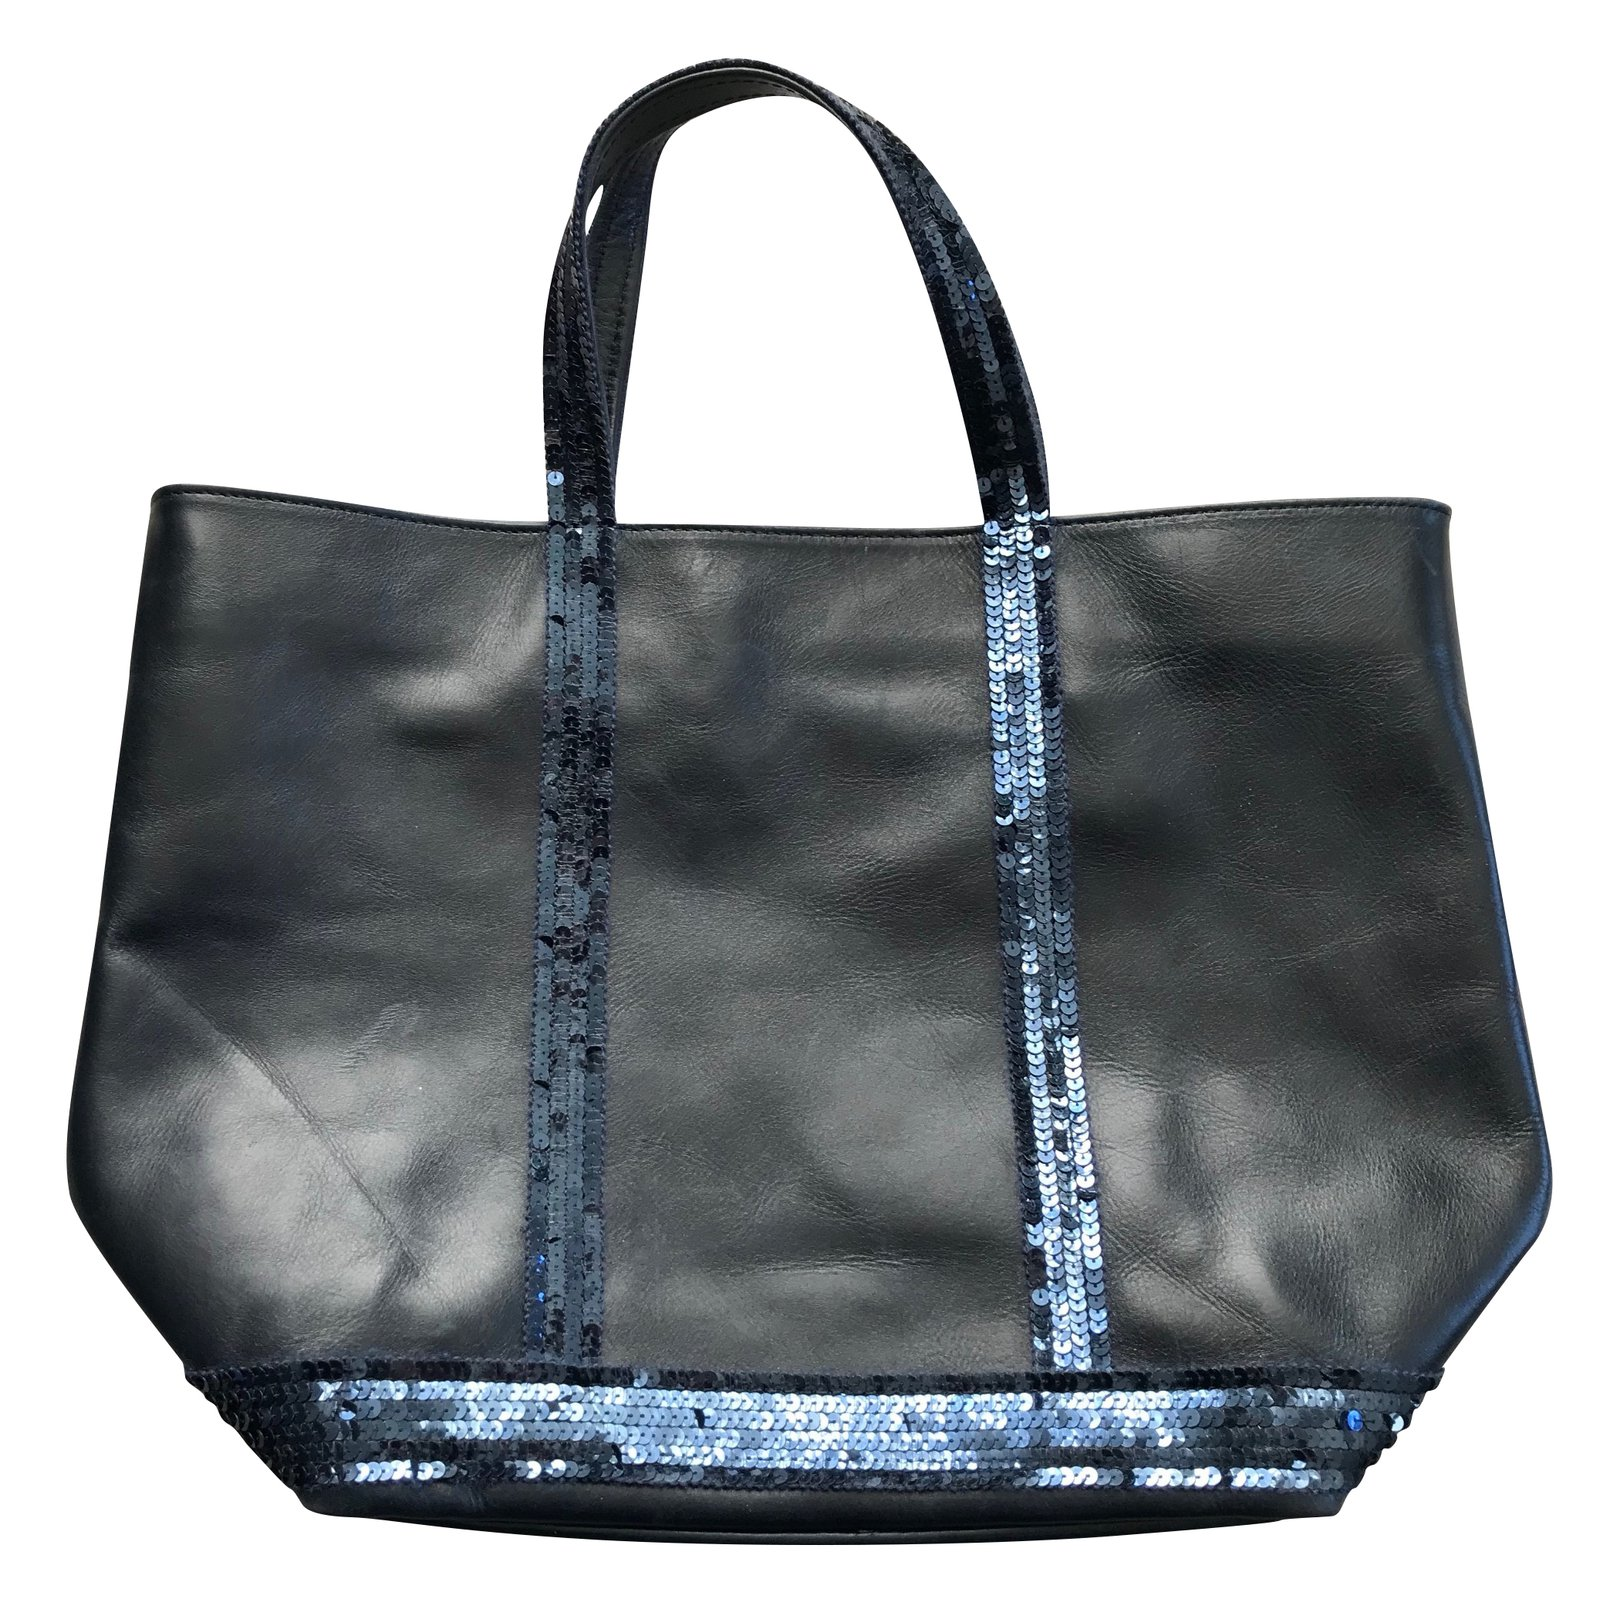 535015ee05ac1 Vanessa bruno glitter leather tote handbags leather navy blue ref jpg  1600x1600 Vanessa handbags